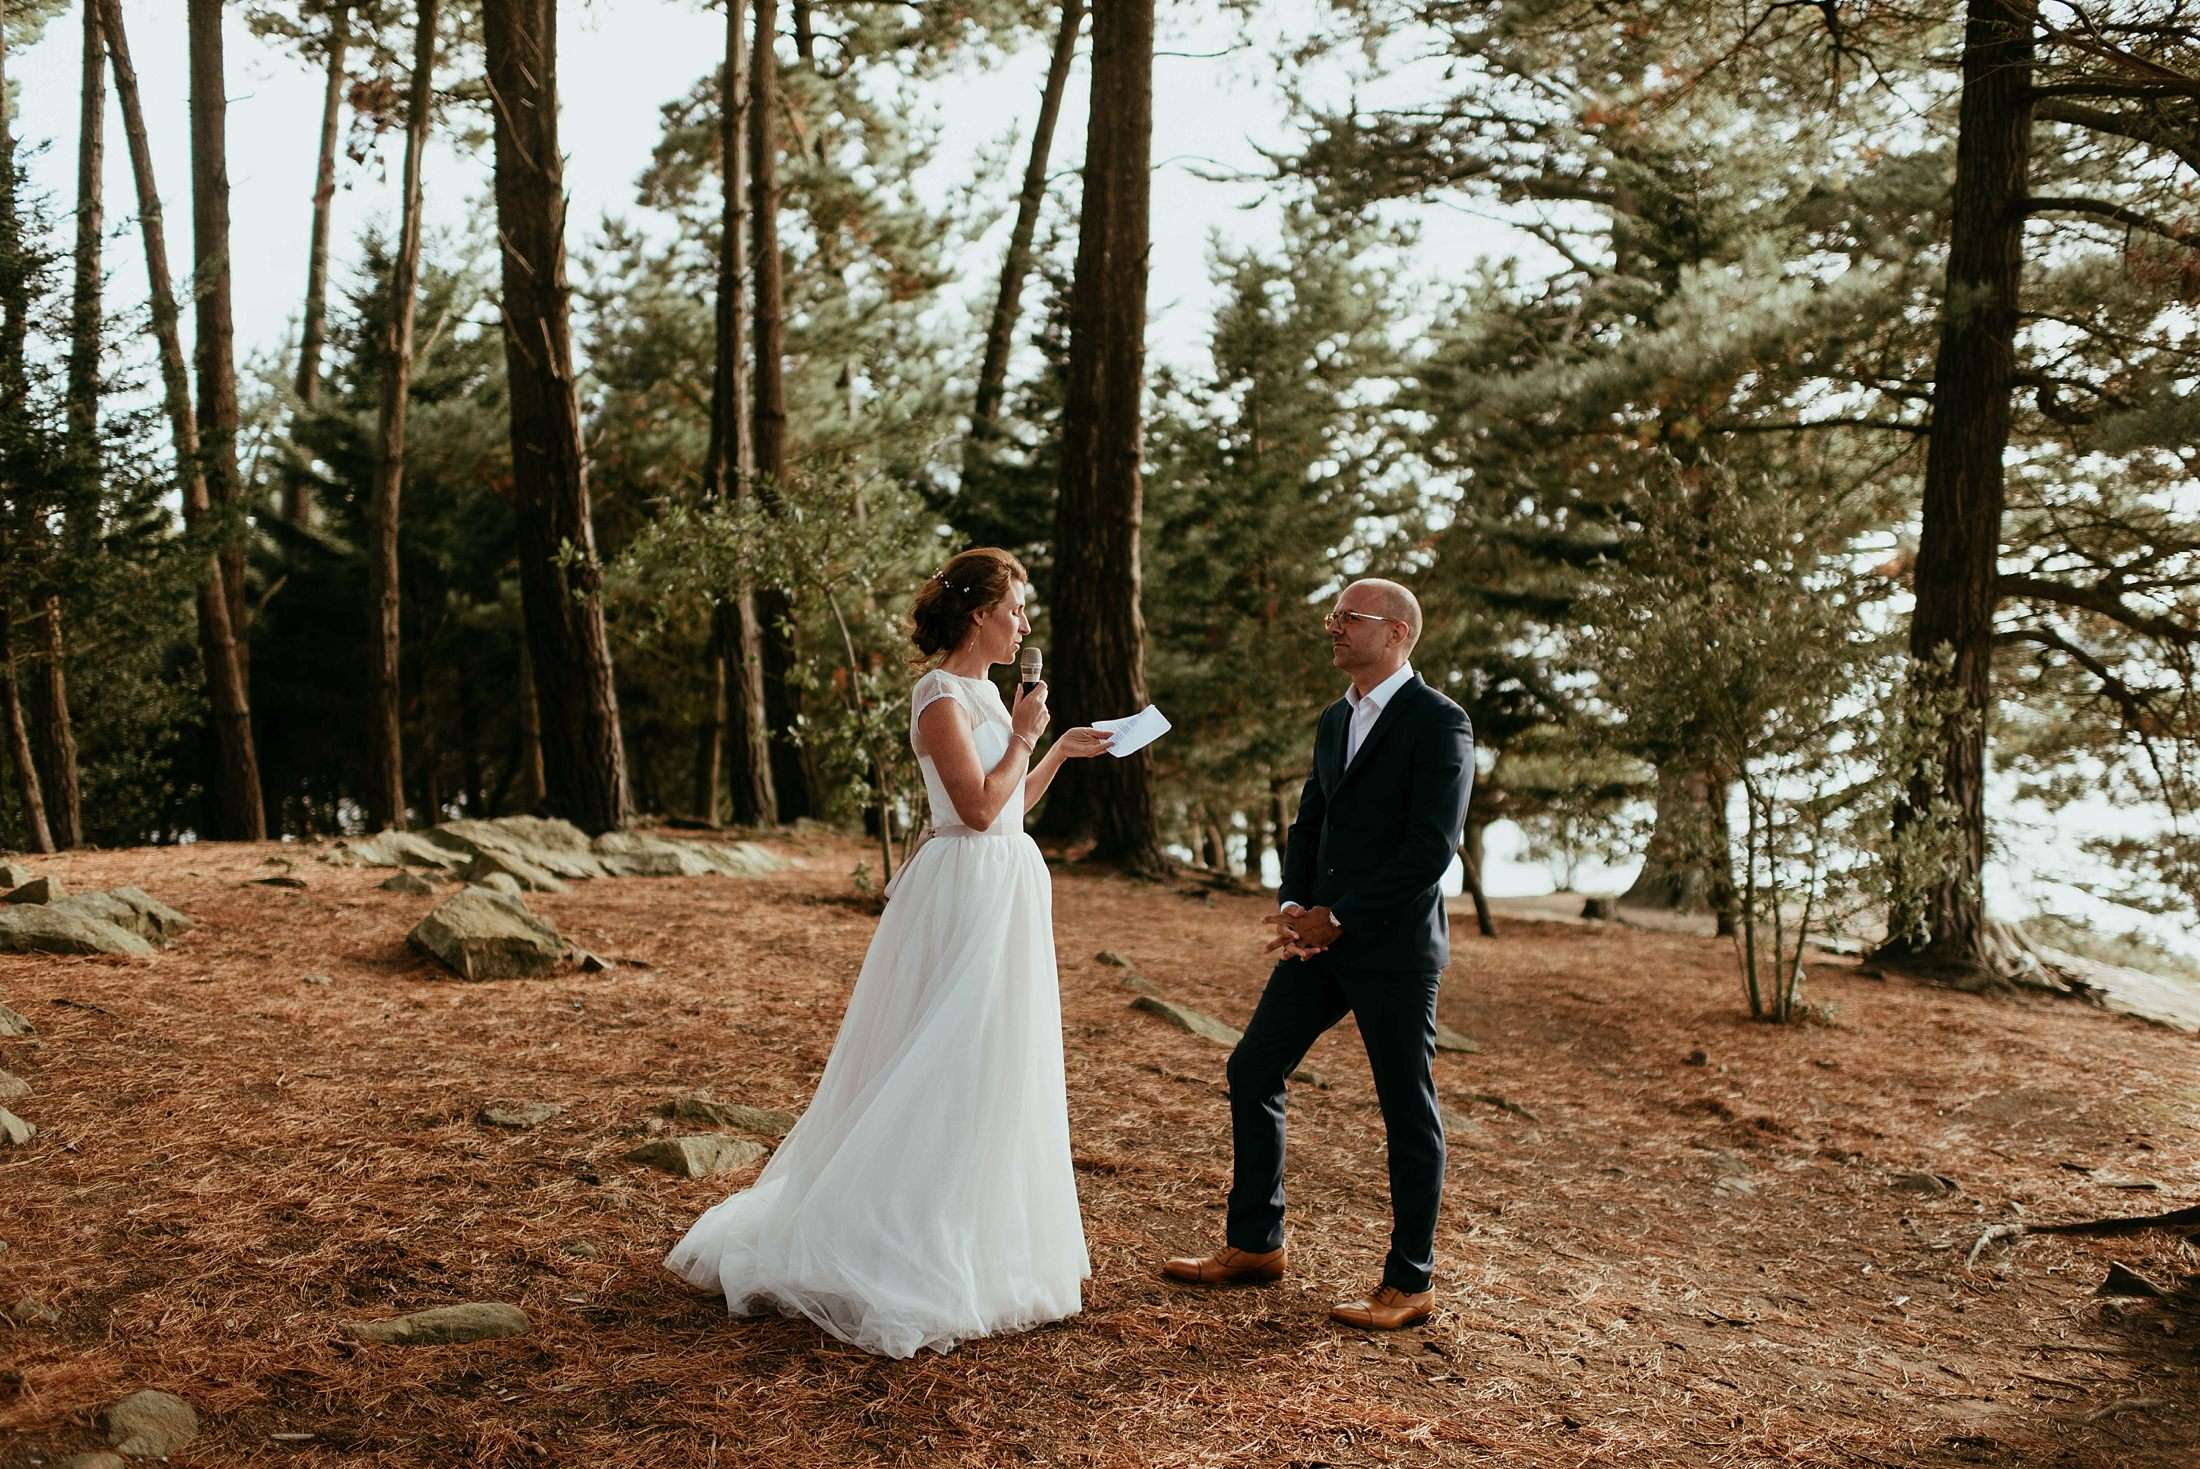 Mariage-storytelling-IleauxMoines-charlesseguy23